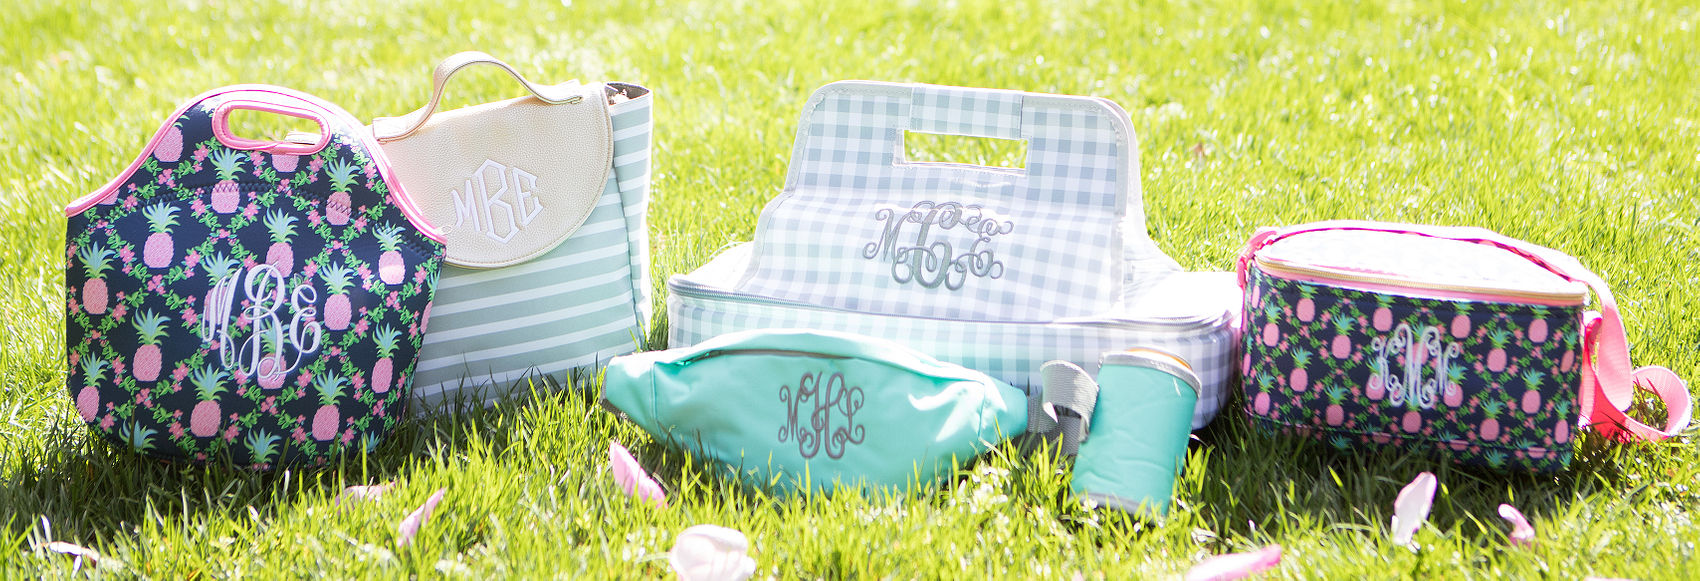 Monogrammed Insulated Bags